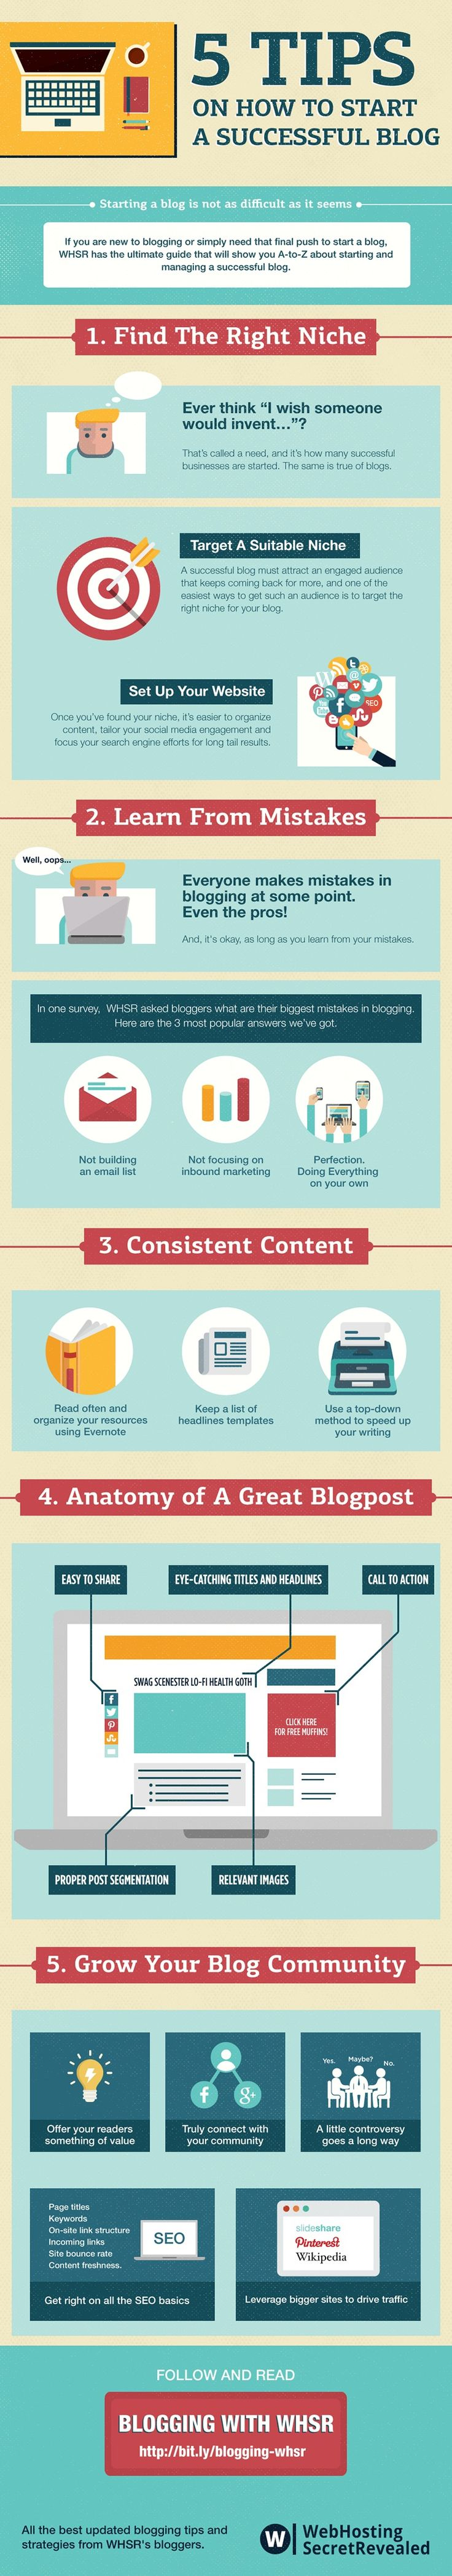 #Infographic - Do You Really Want A Successful Blog? - #blogging